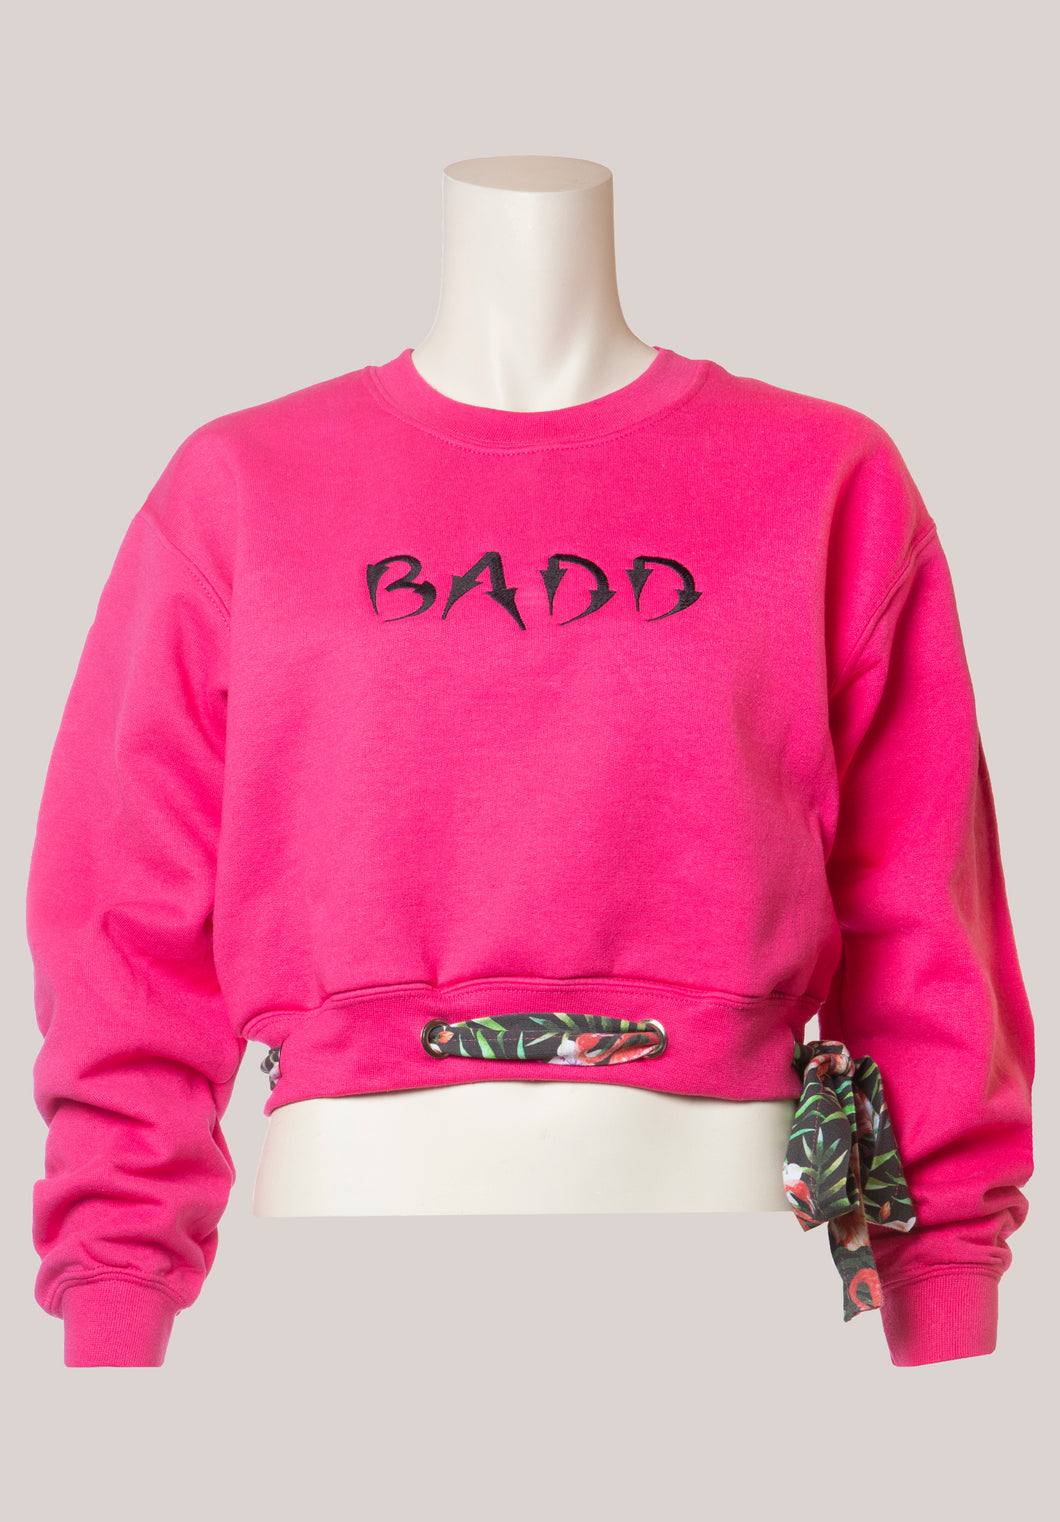 BADD Flower Print Bow Cropped Crewneck Sweater Pink